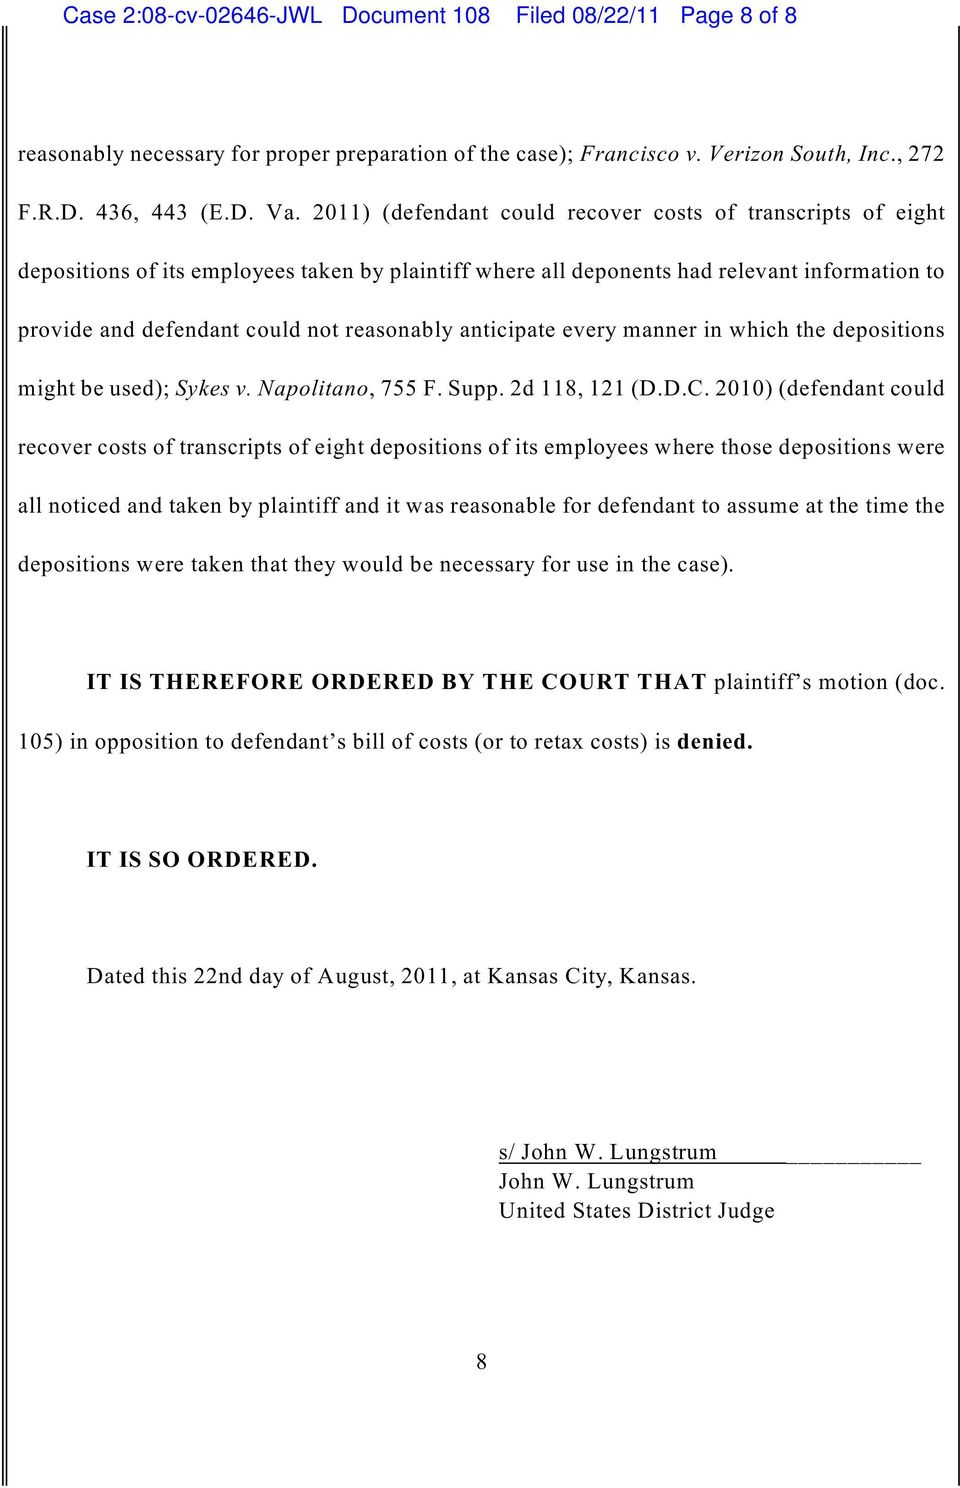 anticipate every manner in which the depositions might be used); Sykes v. Napolitano, 755 F. Supp. 2d 118, 121 (D.D.C.